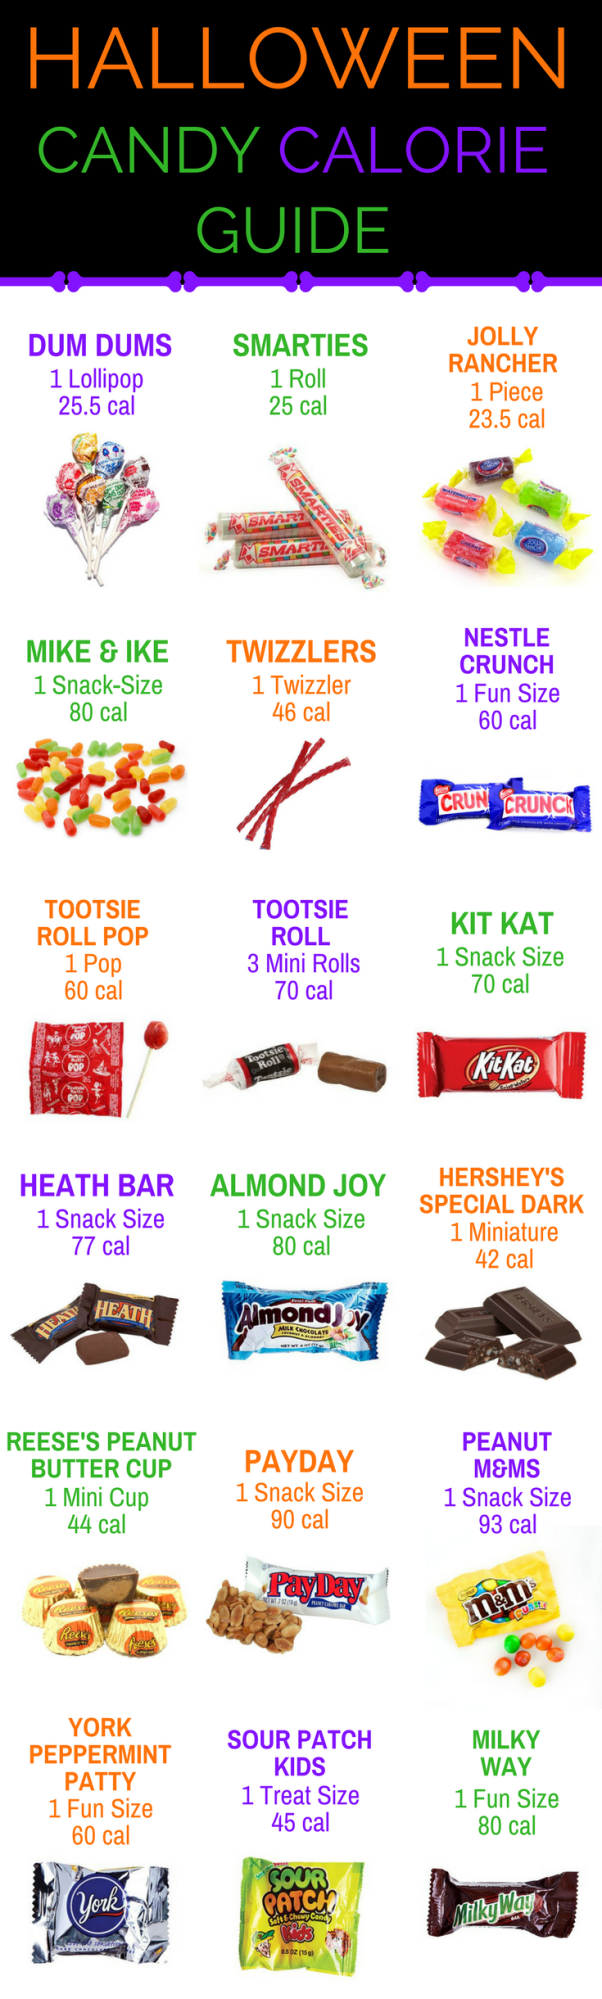 Your Halloween Candy Calorie Guide // spryliving.com